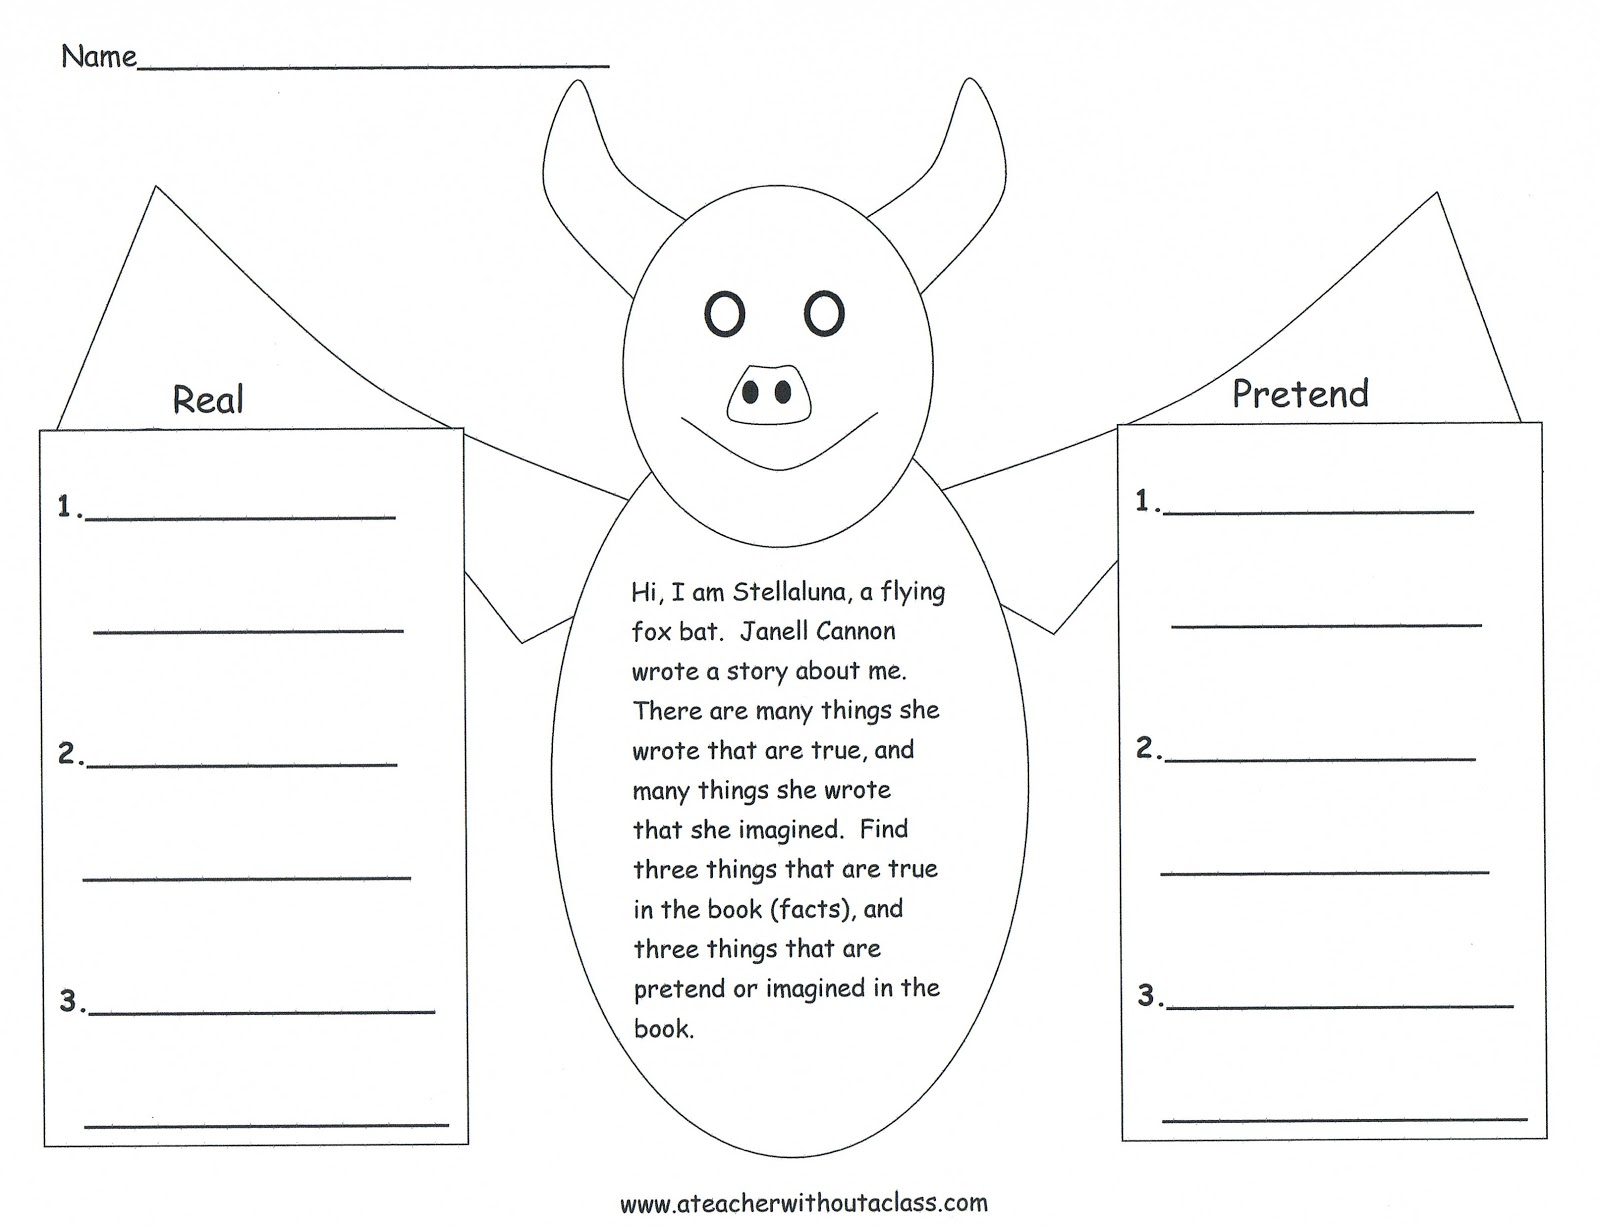 Pretend Teacher Worksheets : A teacher without class bats